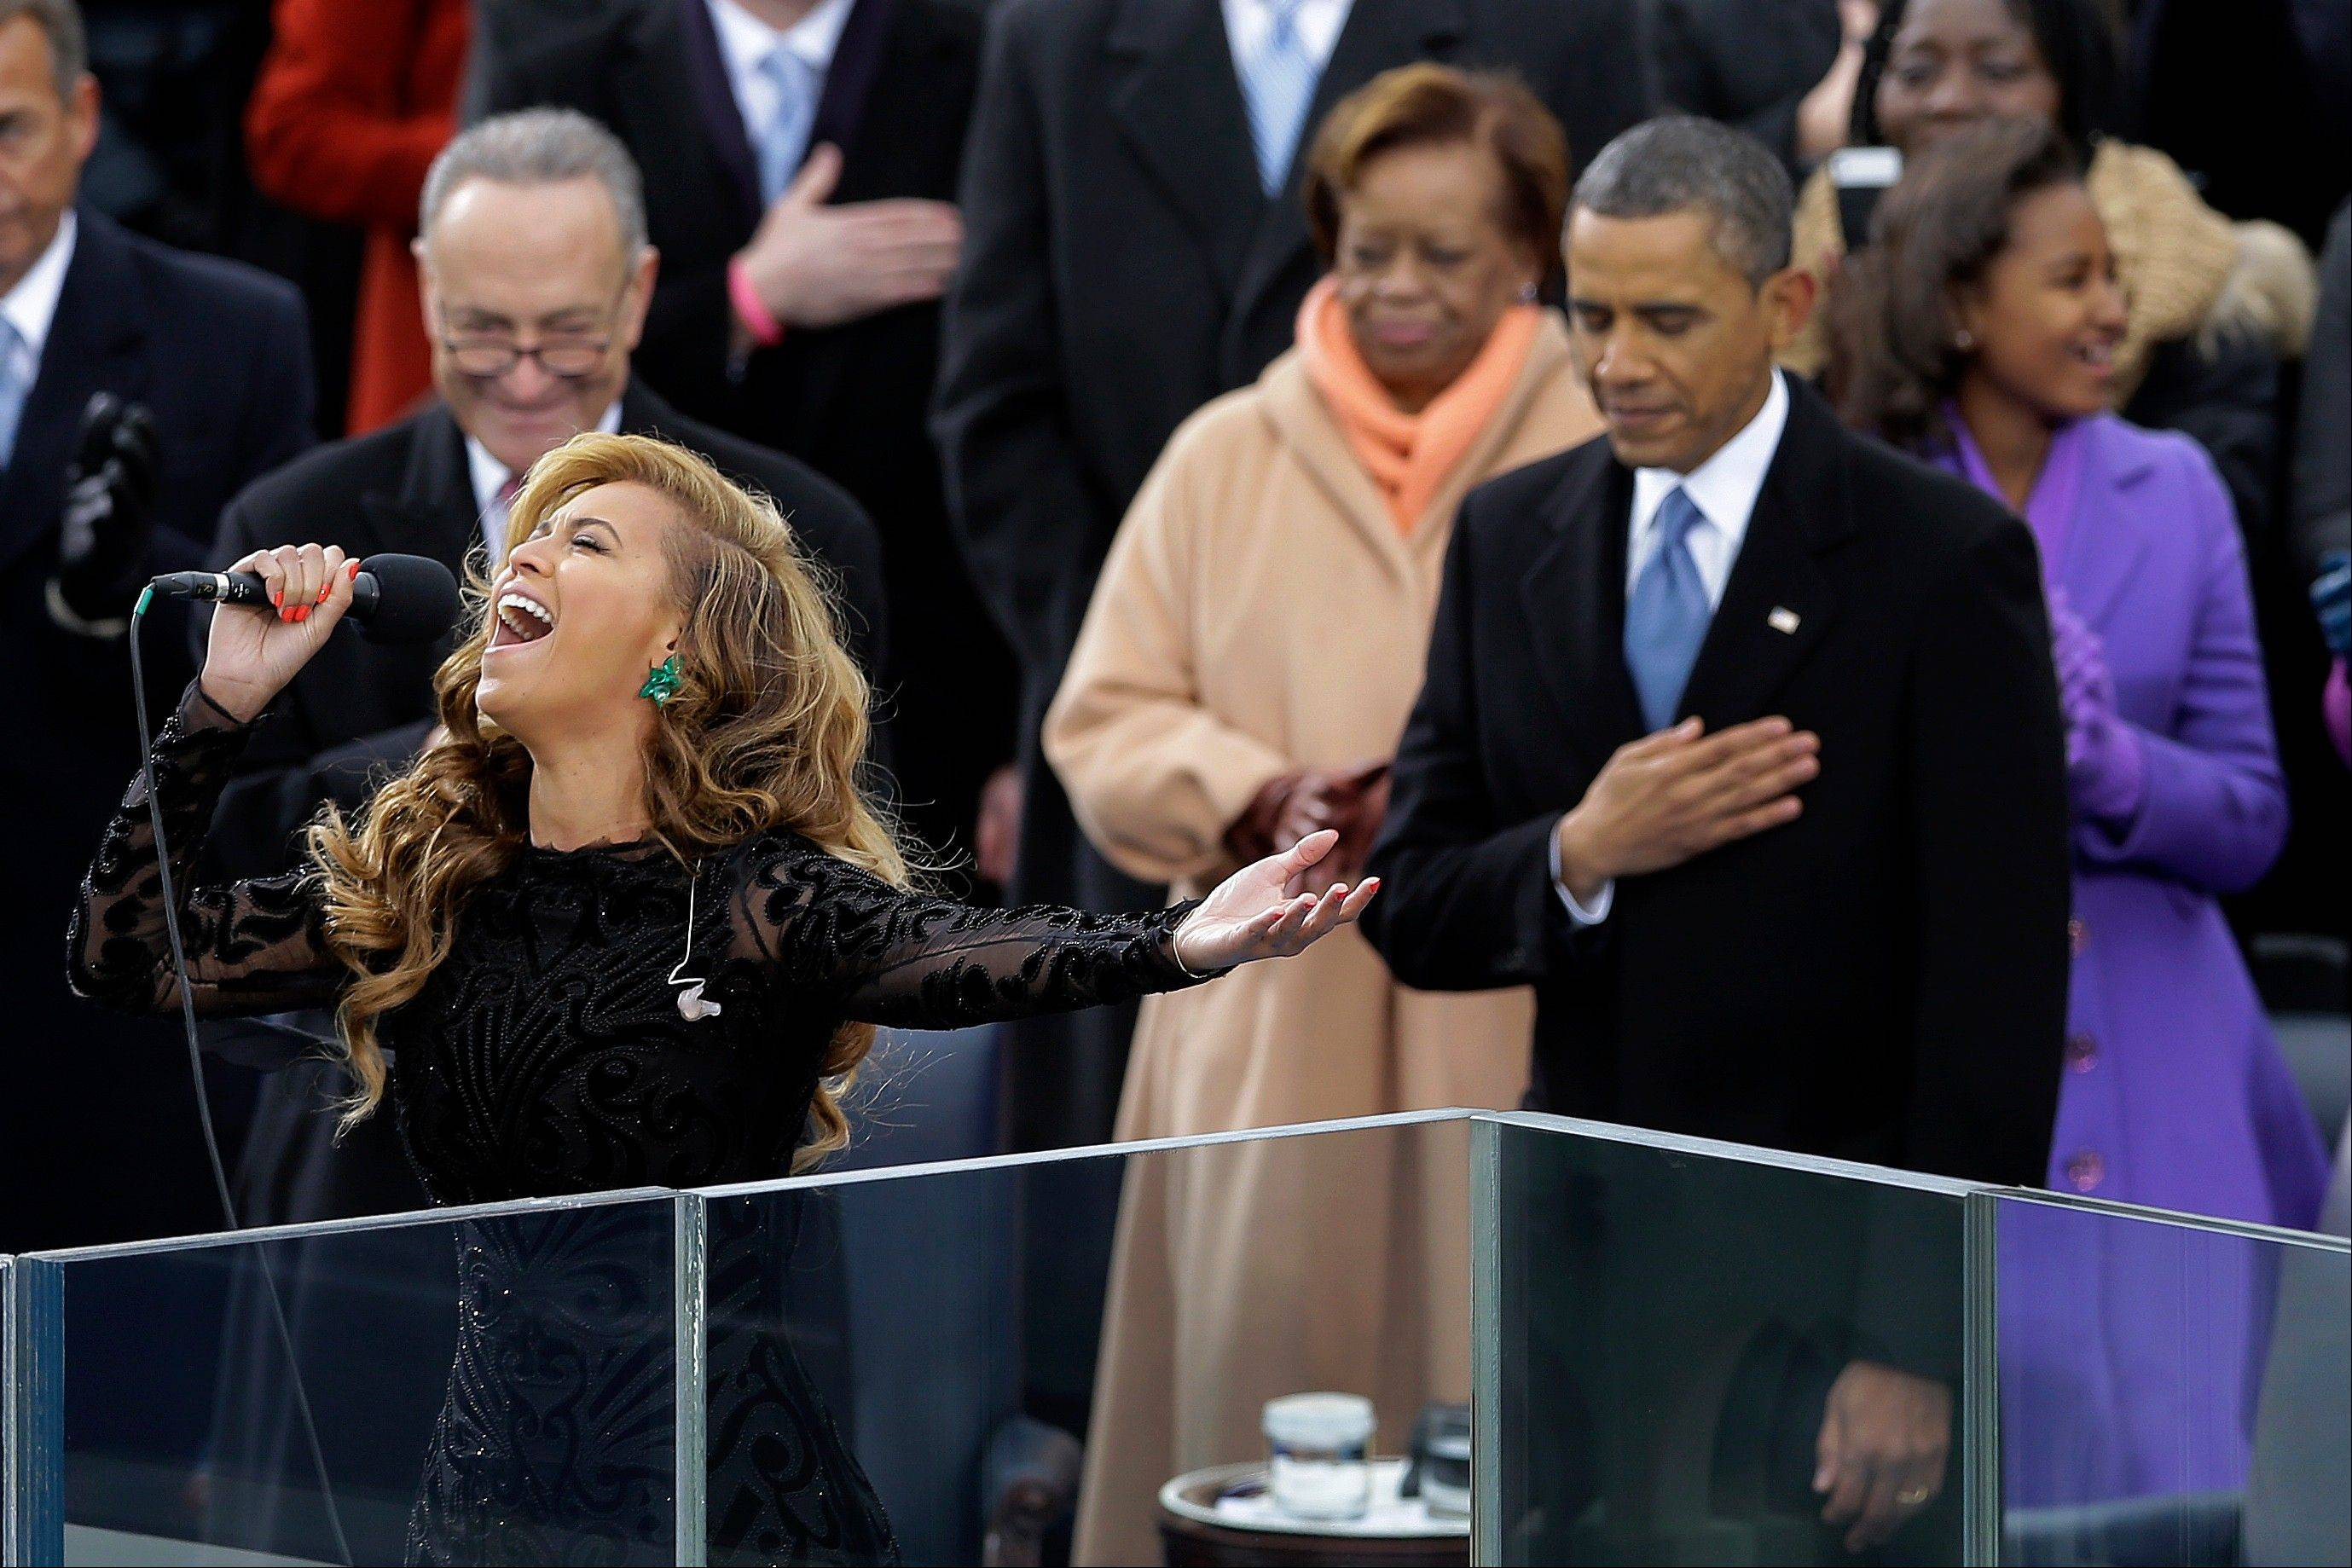 Whether Beyoncé actually sang at the inauguration of President Barack Obama is a tempest in a teapot, but dig deeper and it reveals something about American society at this moment. In small ways, we seem to be constantly learning that the things we see and experience aren't exactly what they're billed to be -- and that we may not care all that much.